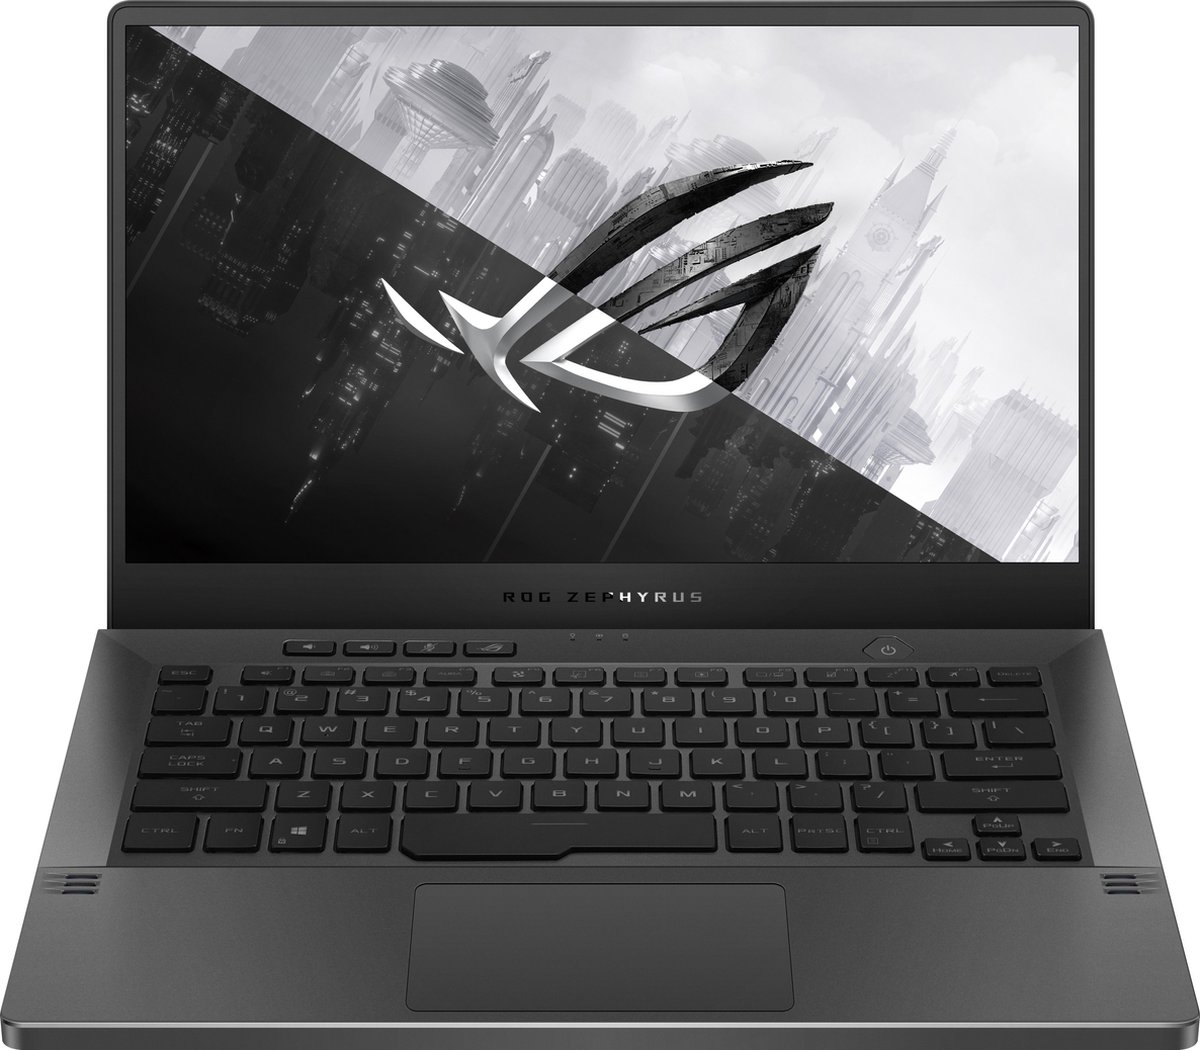 ASUS ROG Zephyrus G14 GA401QM-HZ024T-BE Notebook 35,6 cm (14) 1920 x 1080 Pixels AMD Ryzen 7 16 GB DDR4-SDRAM 1000 GB SSD NVIDIA GeForce RTX 3060 Wi-Fi 6 (802.11ax) Windows 10 Home Grijs